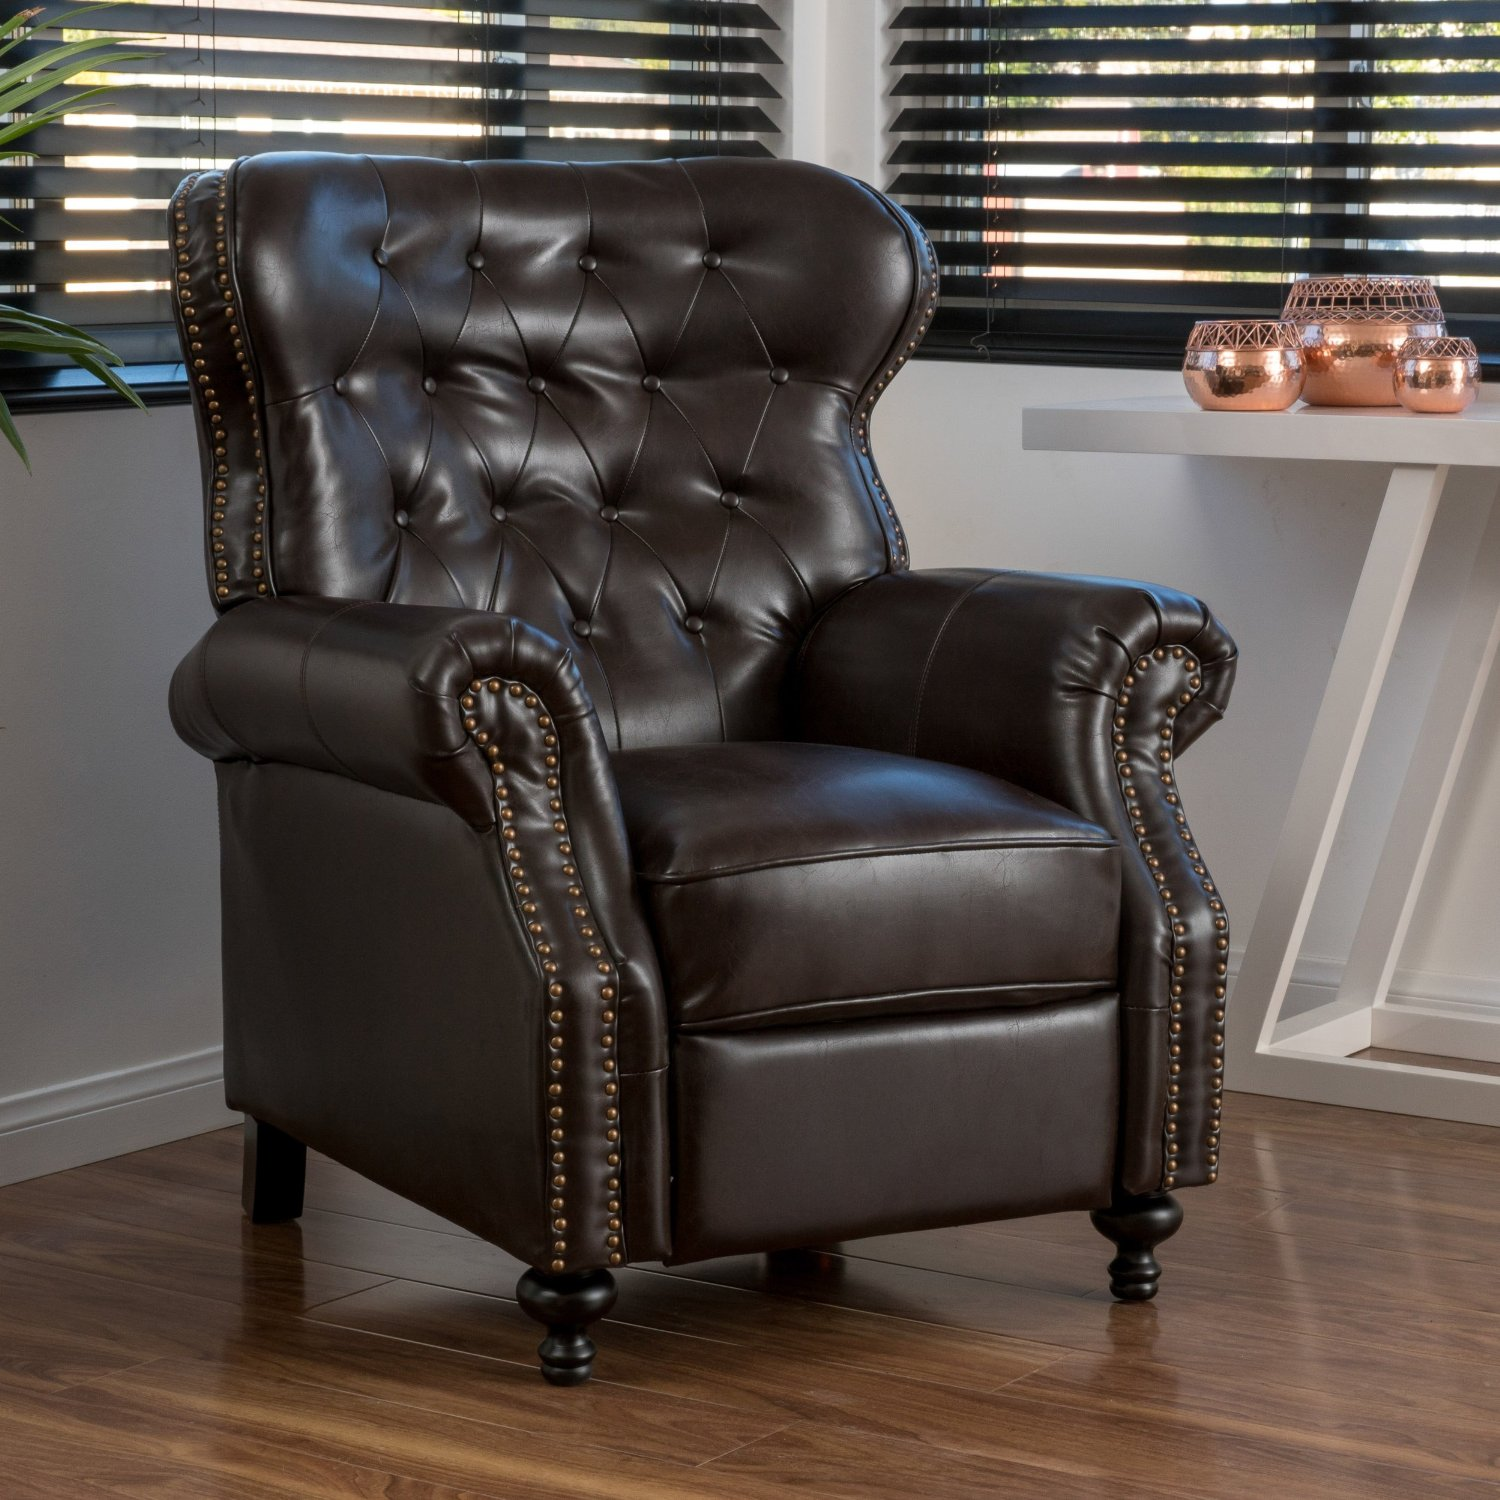 leather recliner chairs cowhide chair uk best man cave recliners waldo brown club